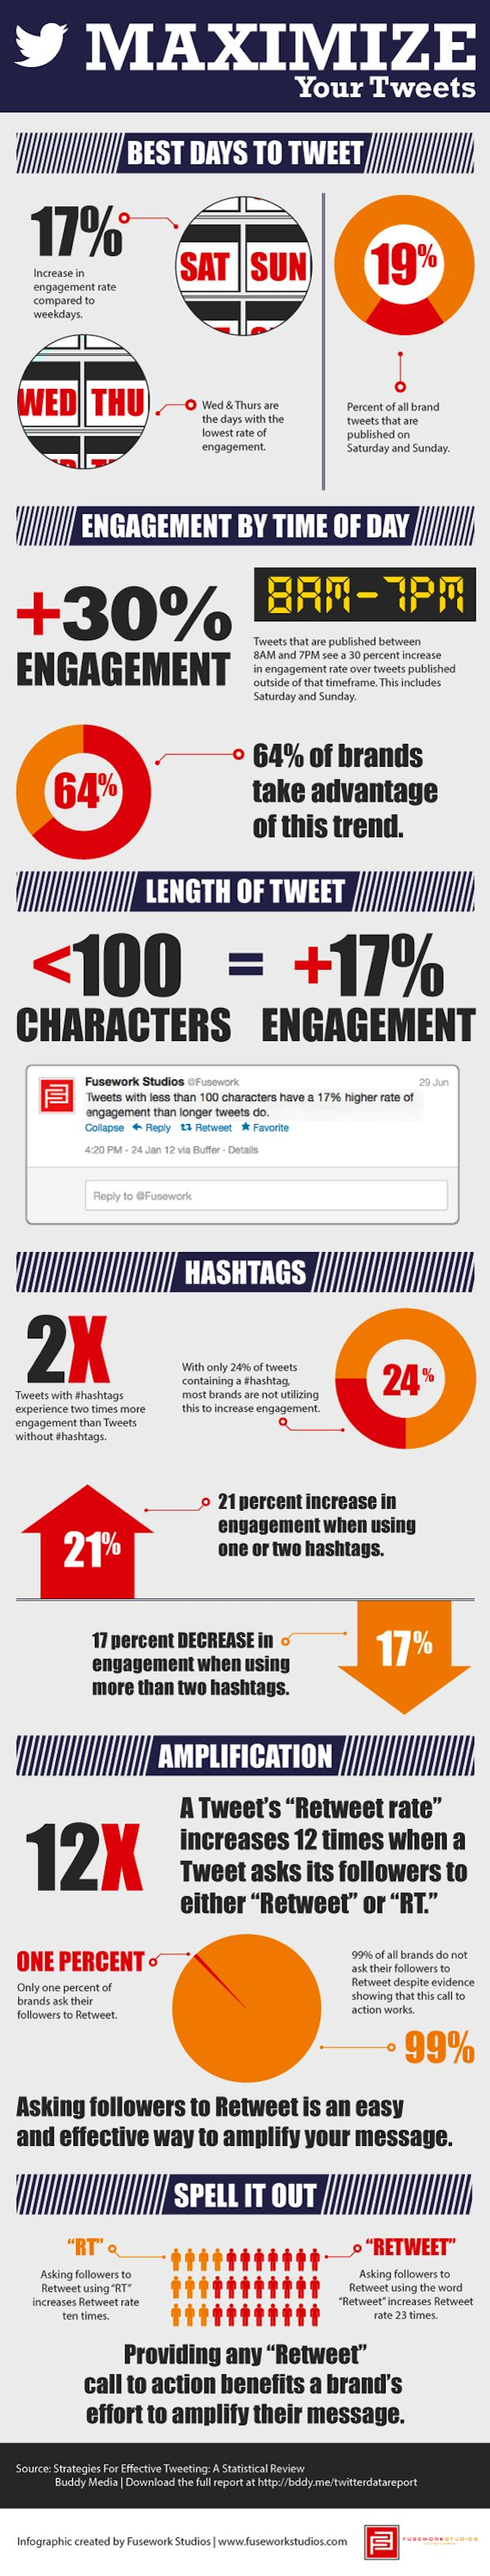 8/27/2012 - [INFOGRAPHICS] - Maximize your tweets